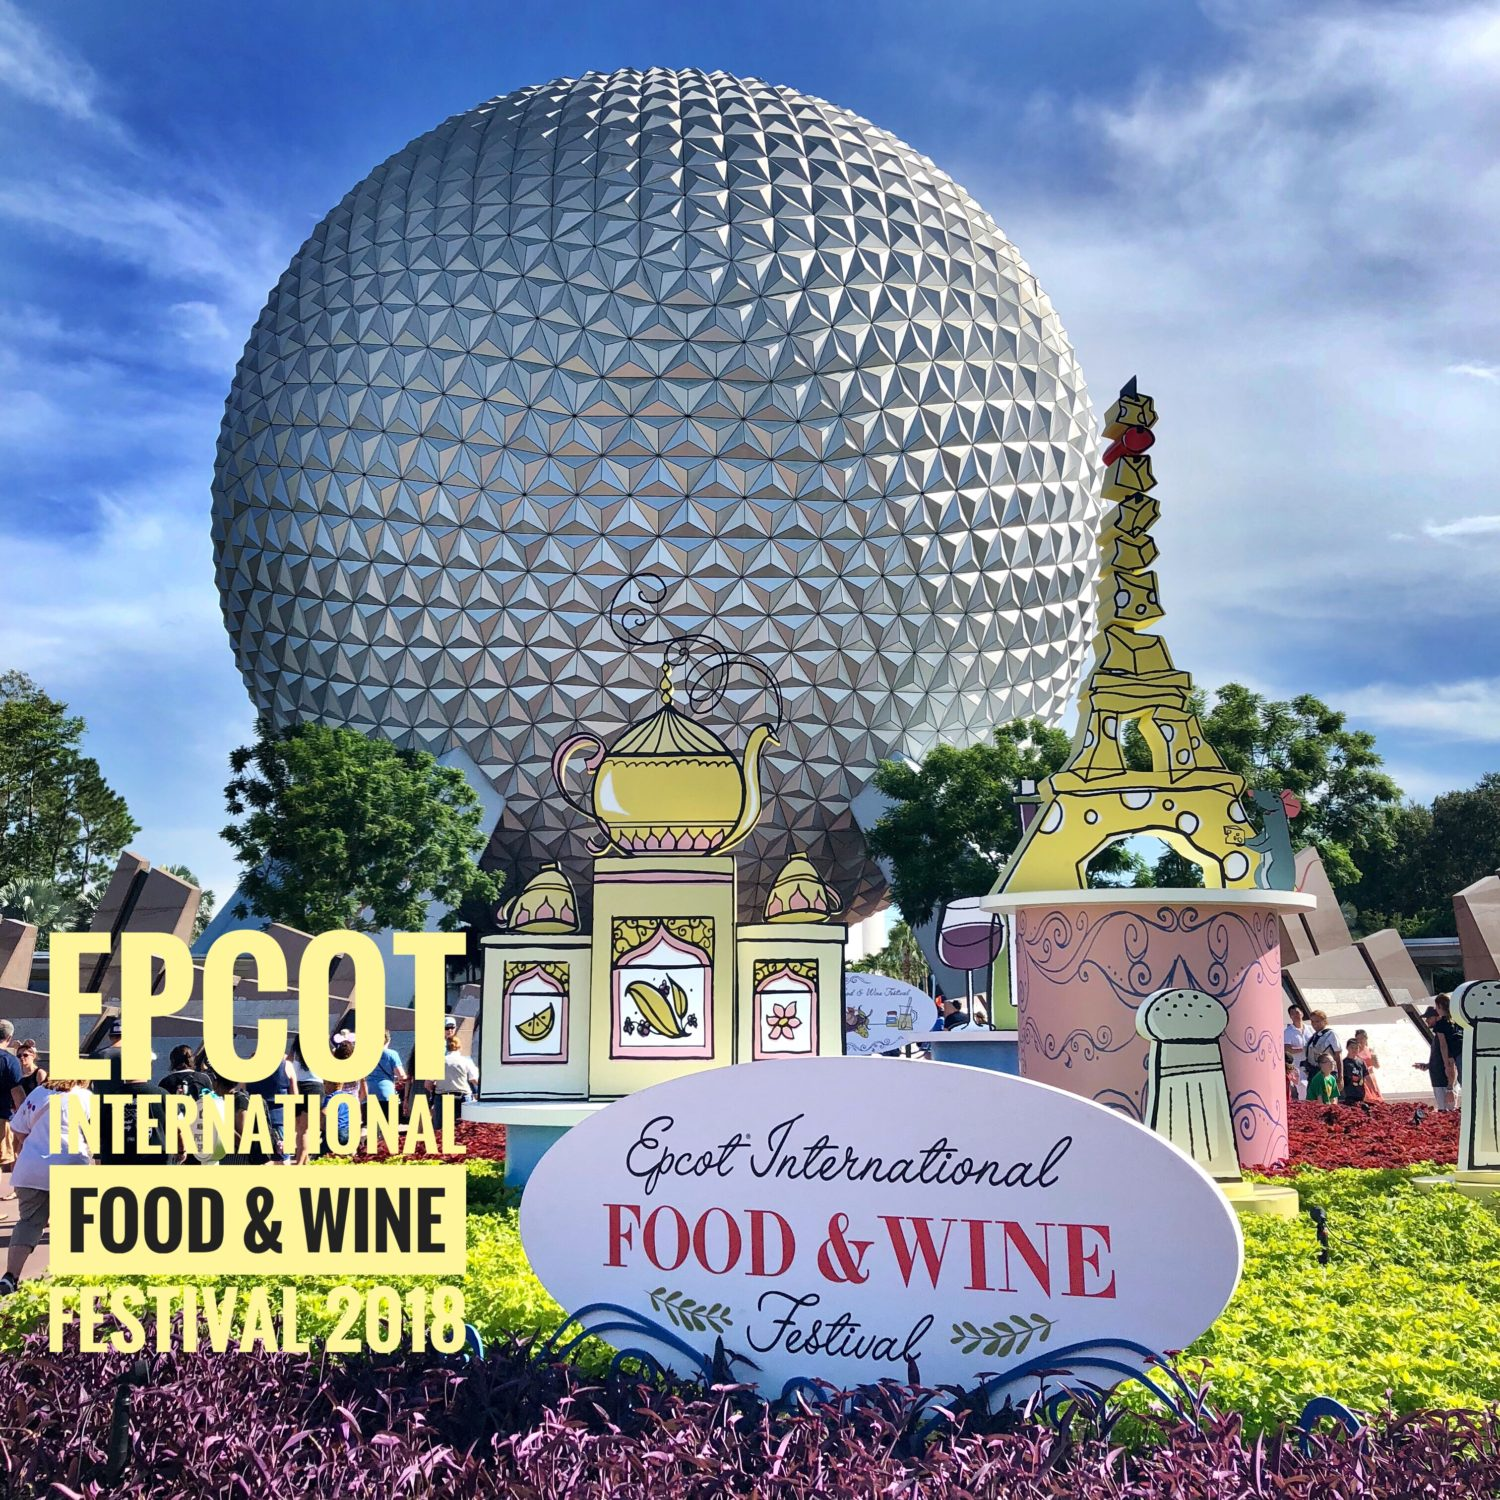 Epcot International Food & Wine Festival 2018 Review